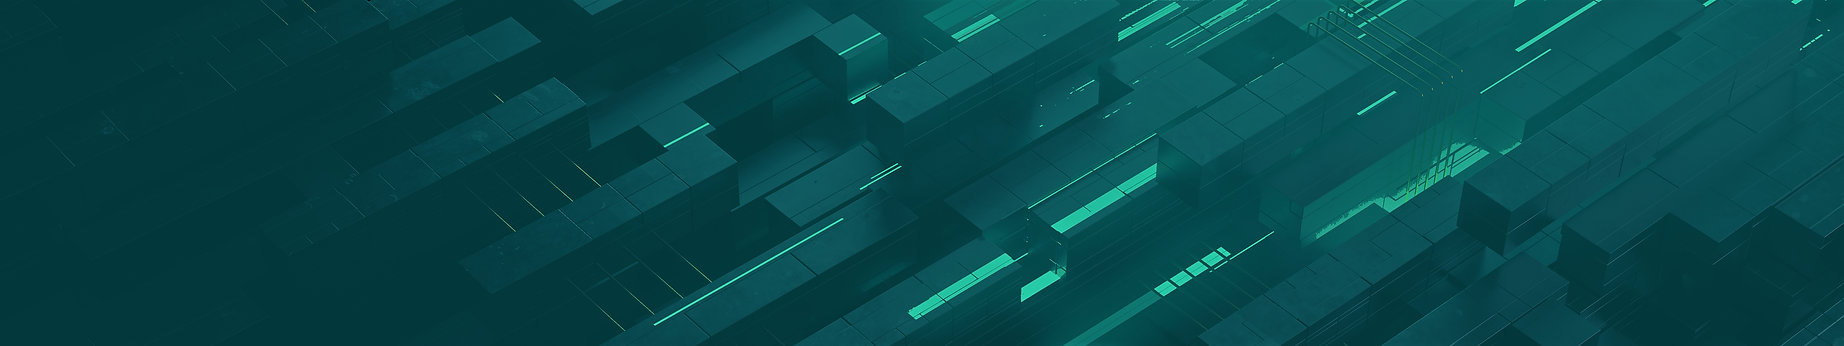 3D-3D-Abstract-abstract-neon-glow-teal-technology-science-fiction-digital-art-1440259 -1 (